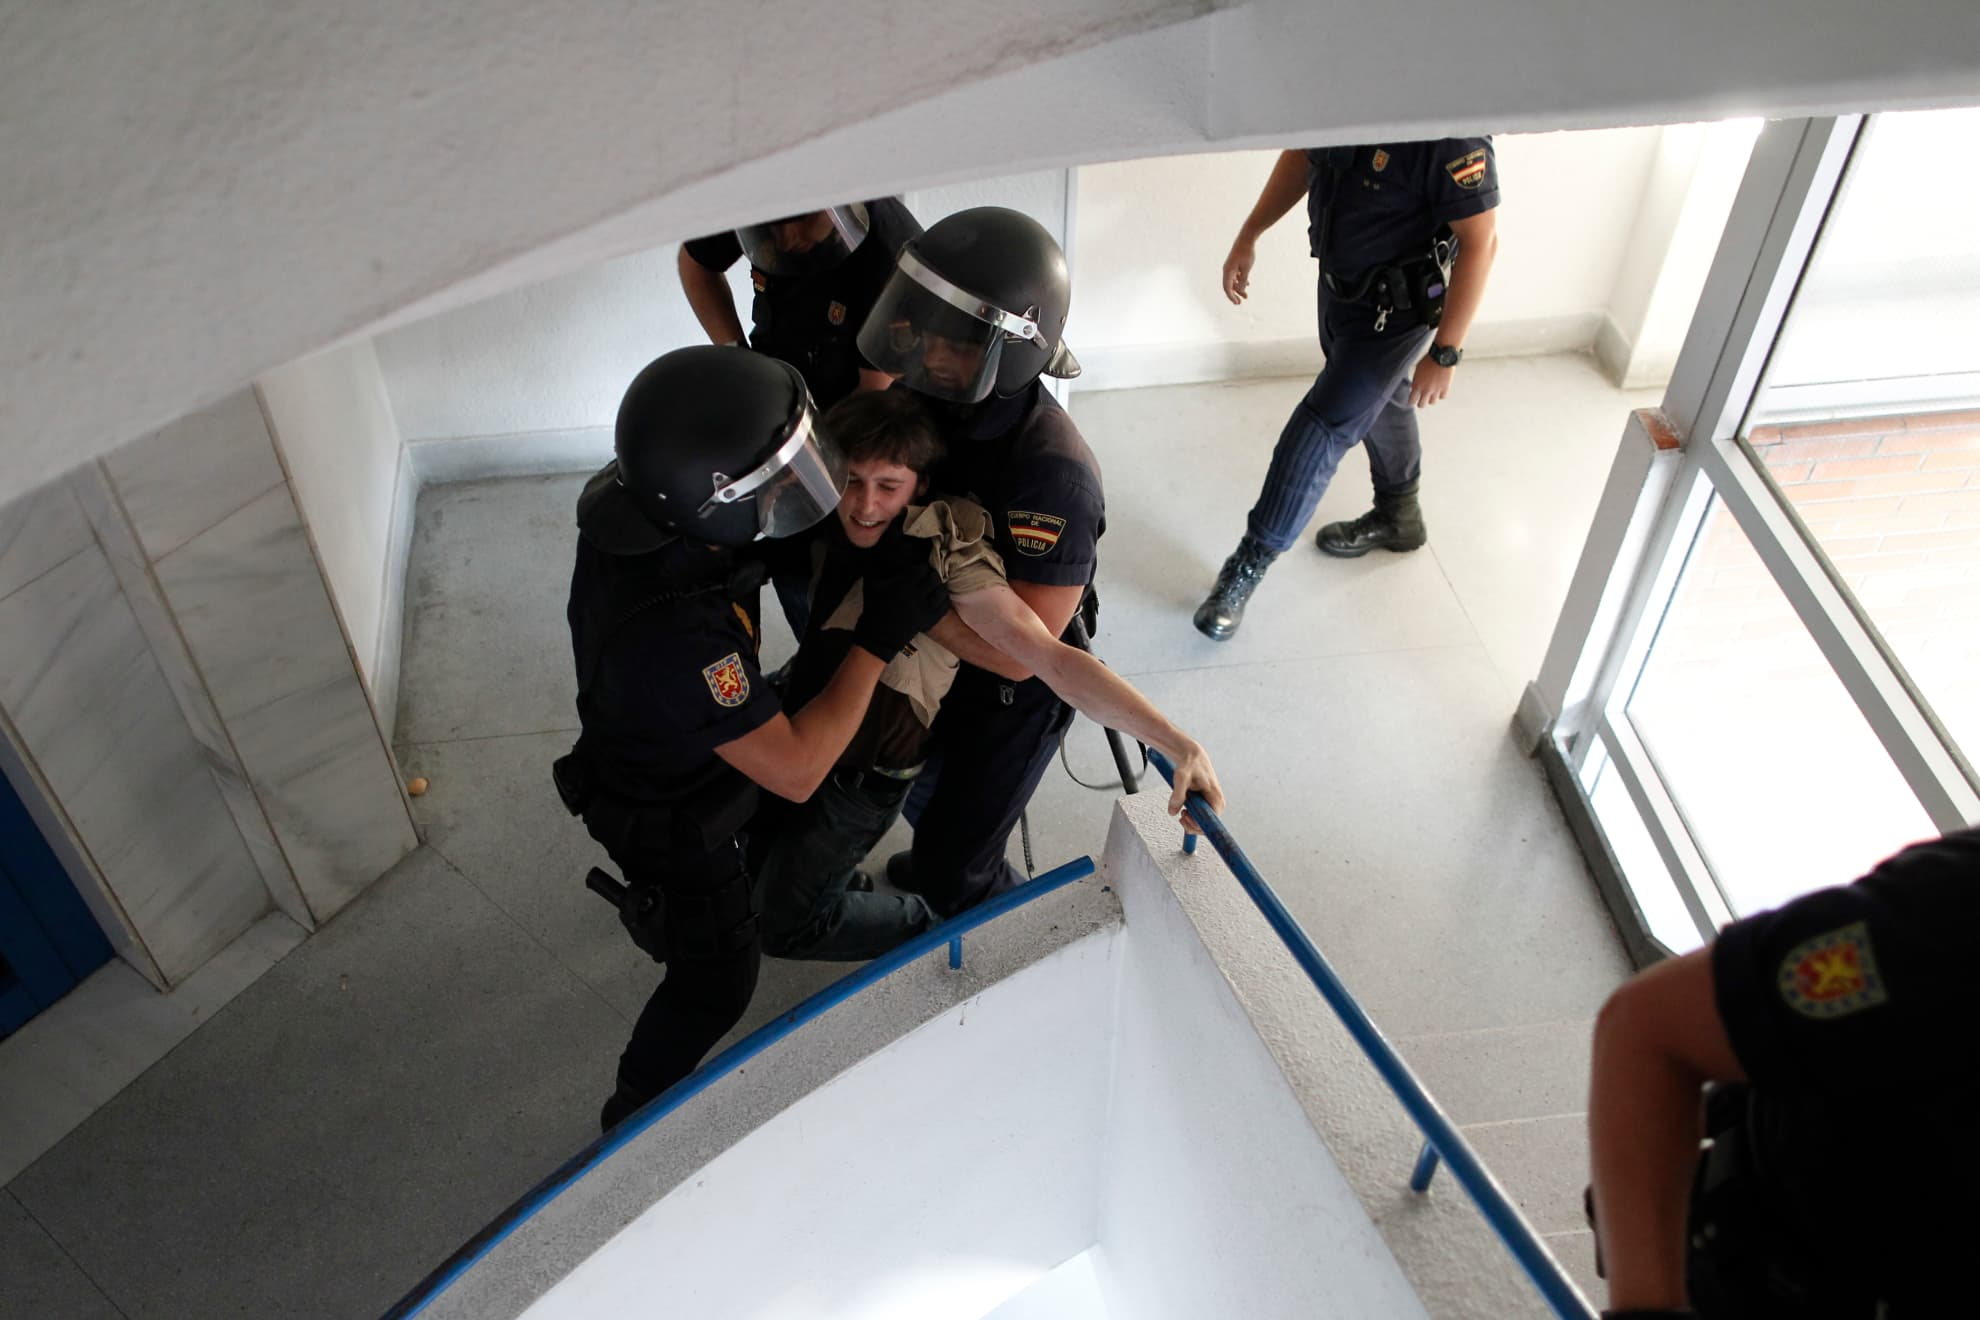 Police remove activists as they try to stop the eviction of Susana Montoya in Madrid, Wednesday, July 24, 2013. Montoya and her husband have two children and have occupied an apartment of the City Hall Housing Company for the past year, as they could not afford to pay rent.